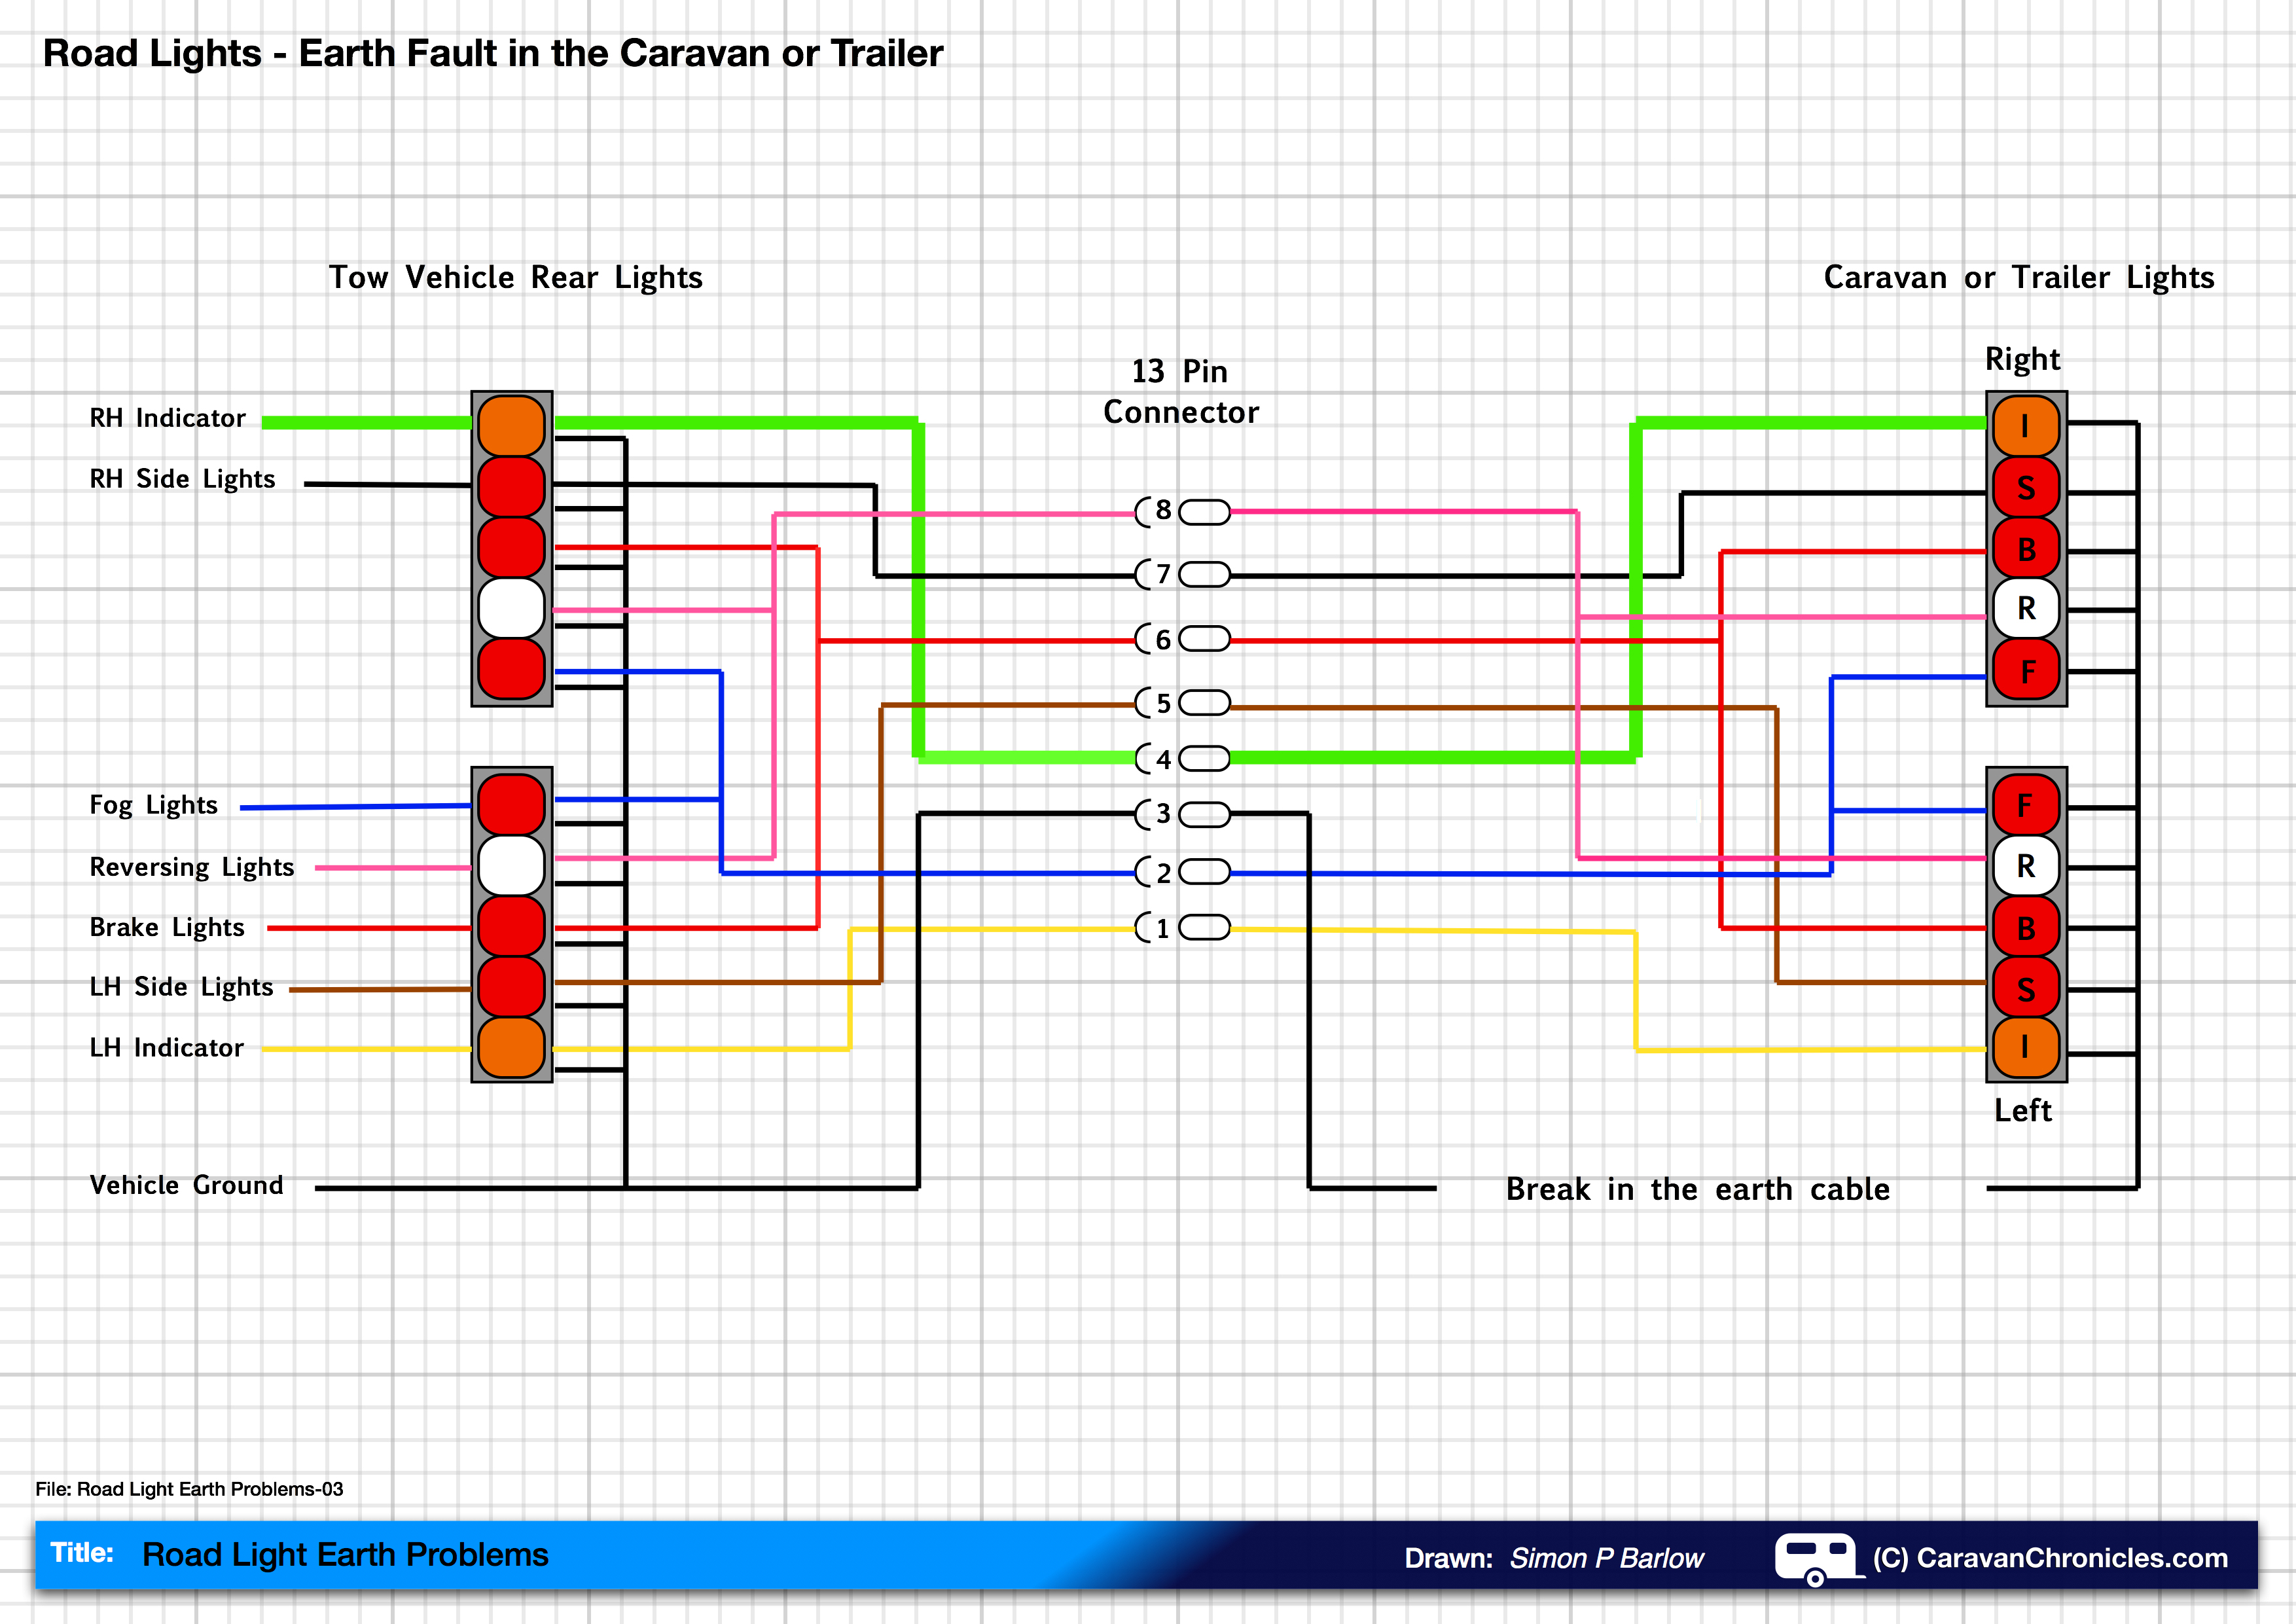 Trailer Board Wiring Diagram | Wiring Diagram - Trailer Board Wiring Diagram